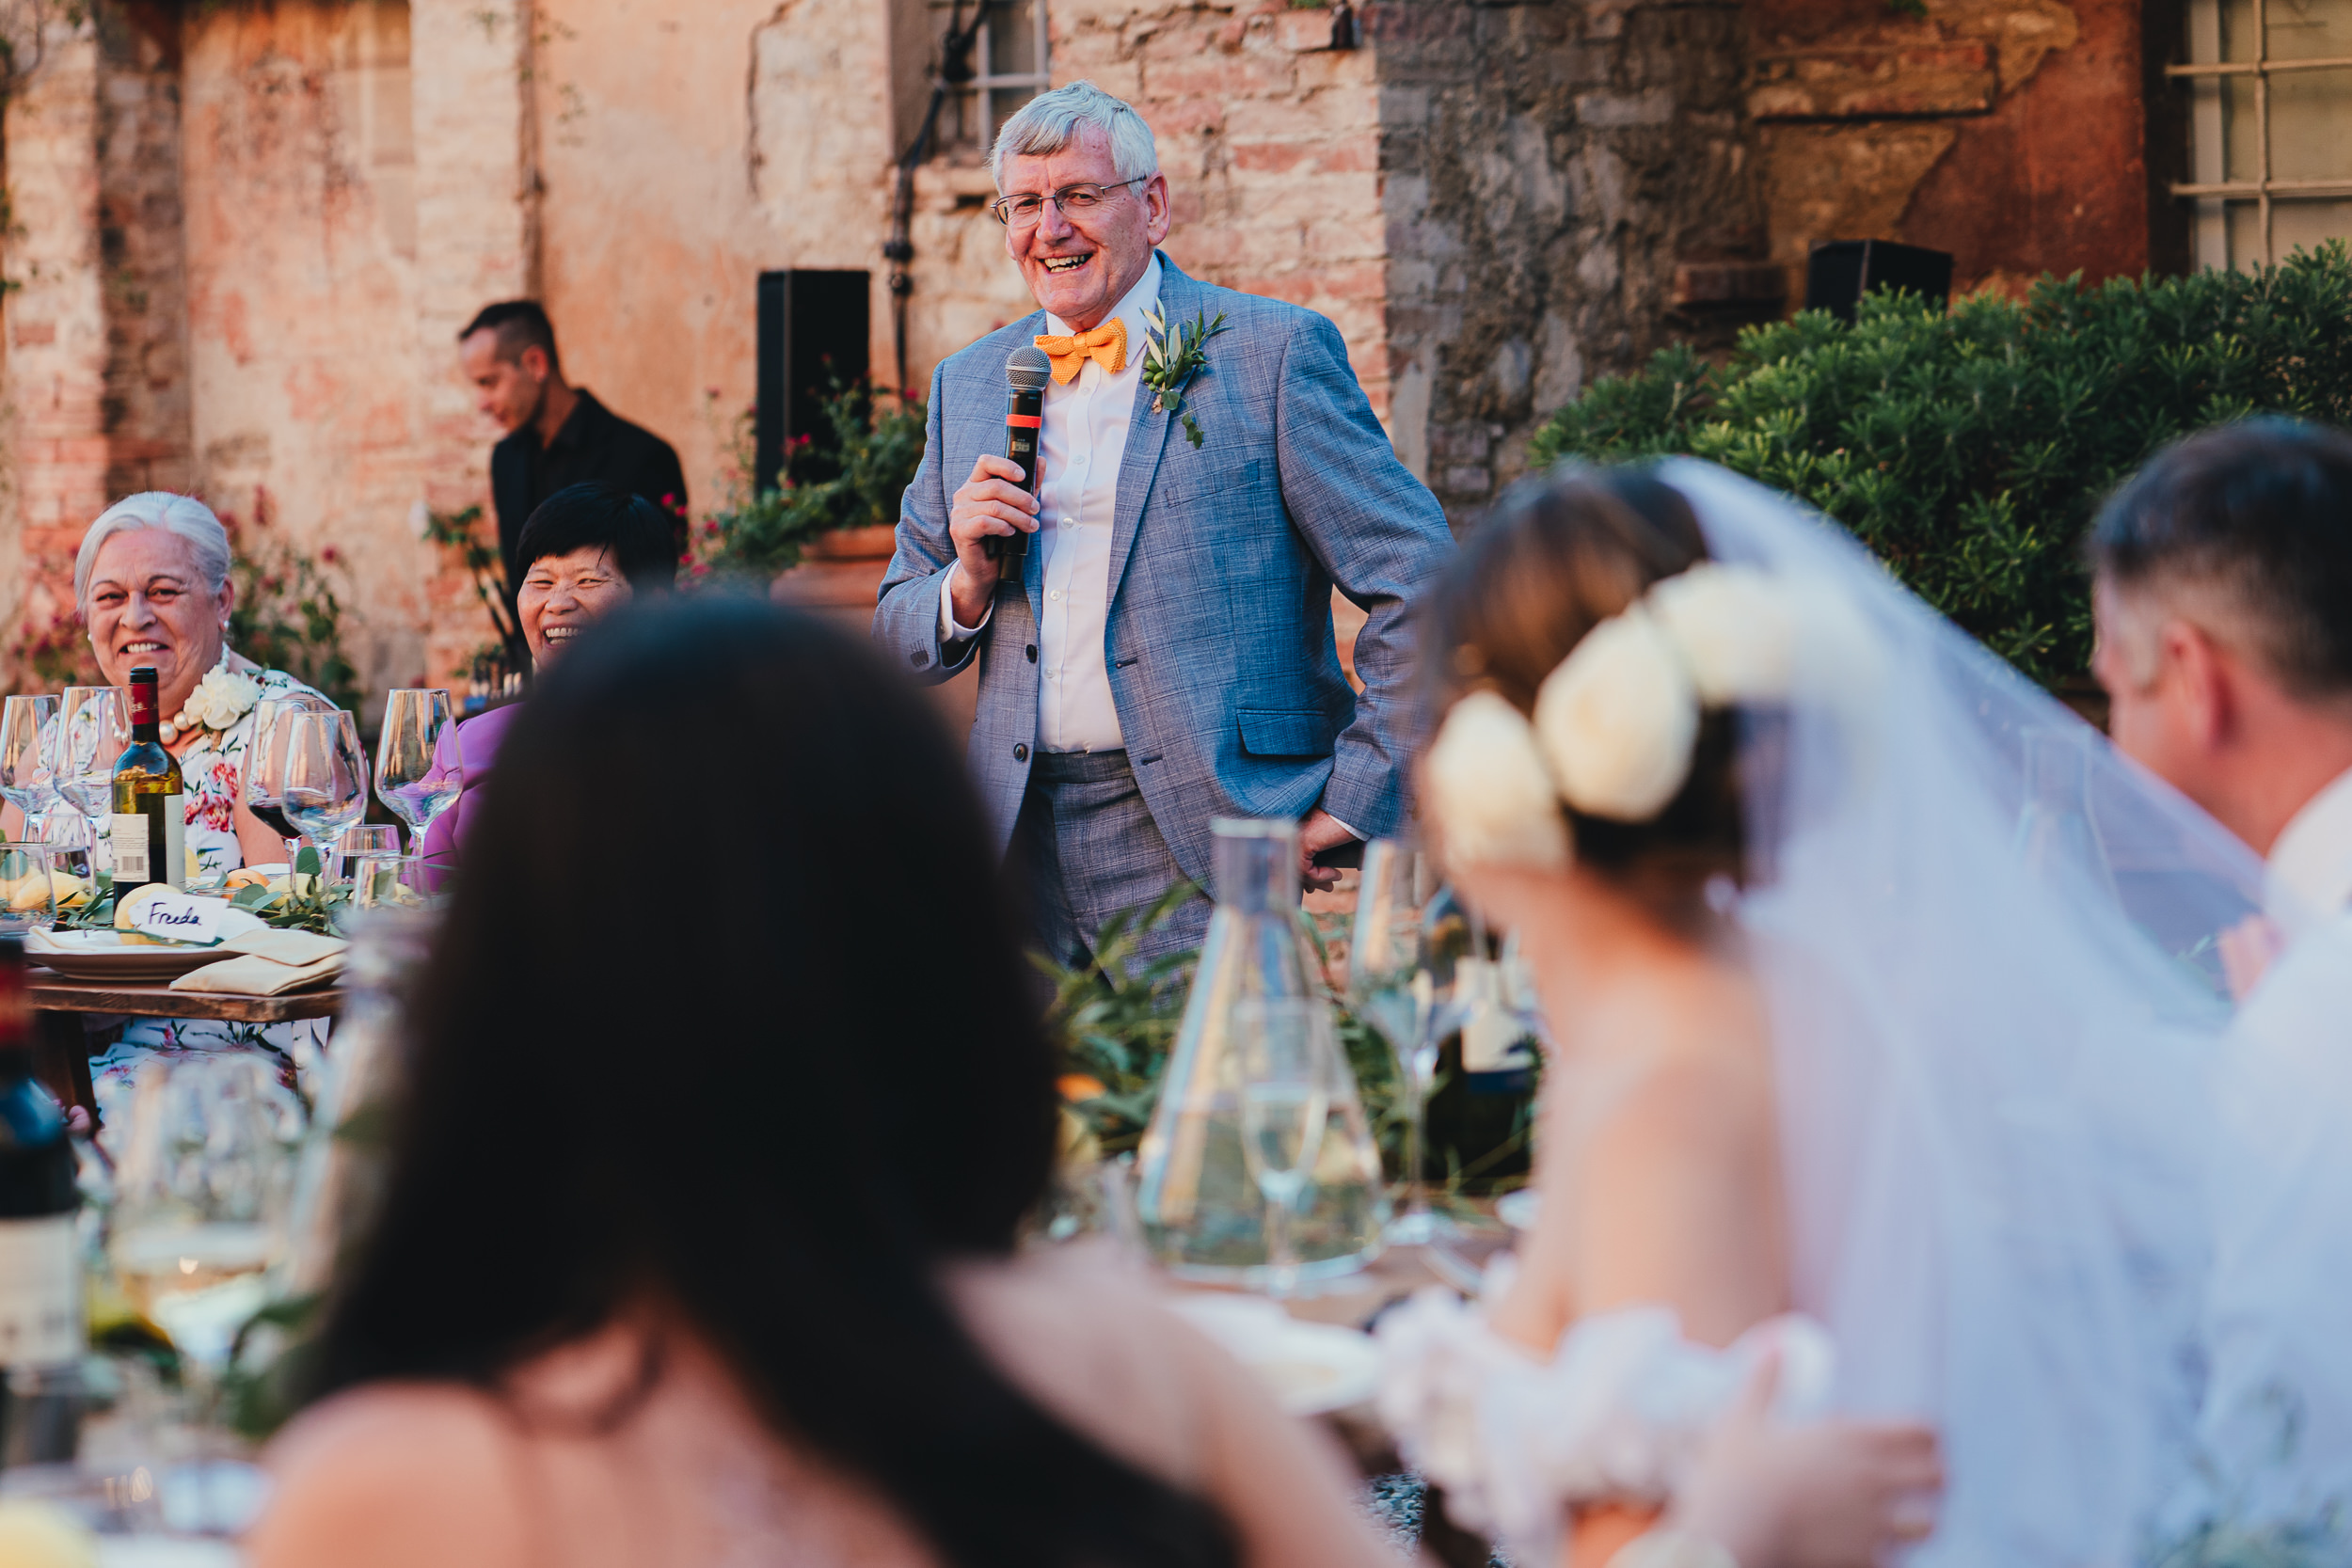 The Father of the Bride giving a speech